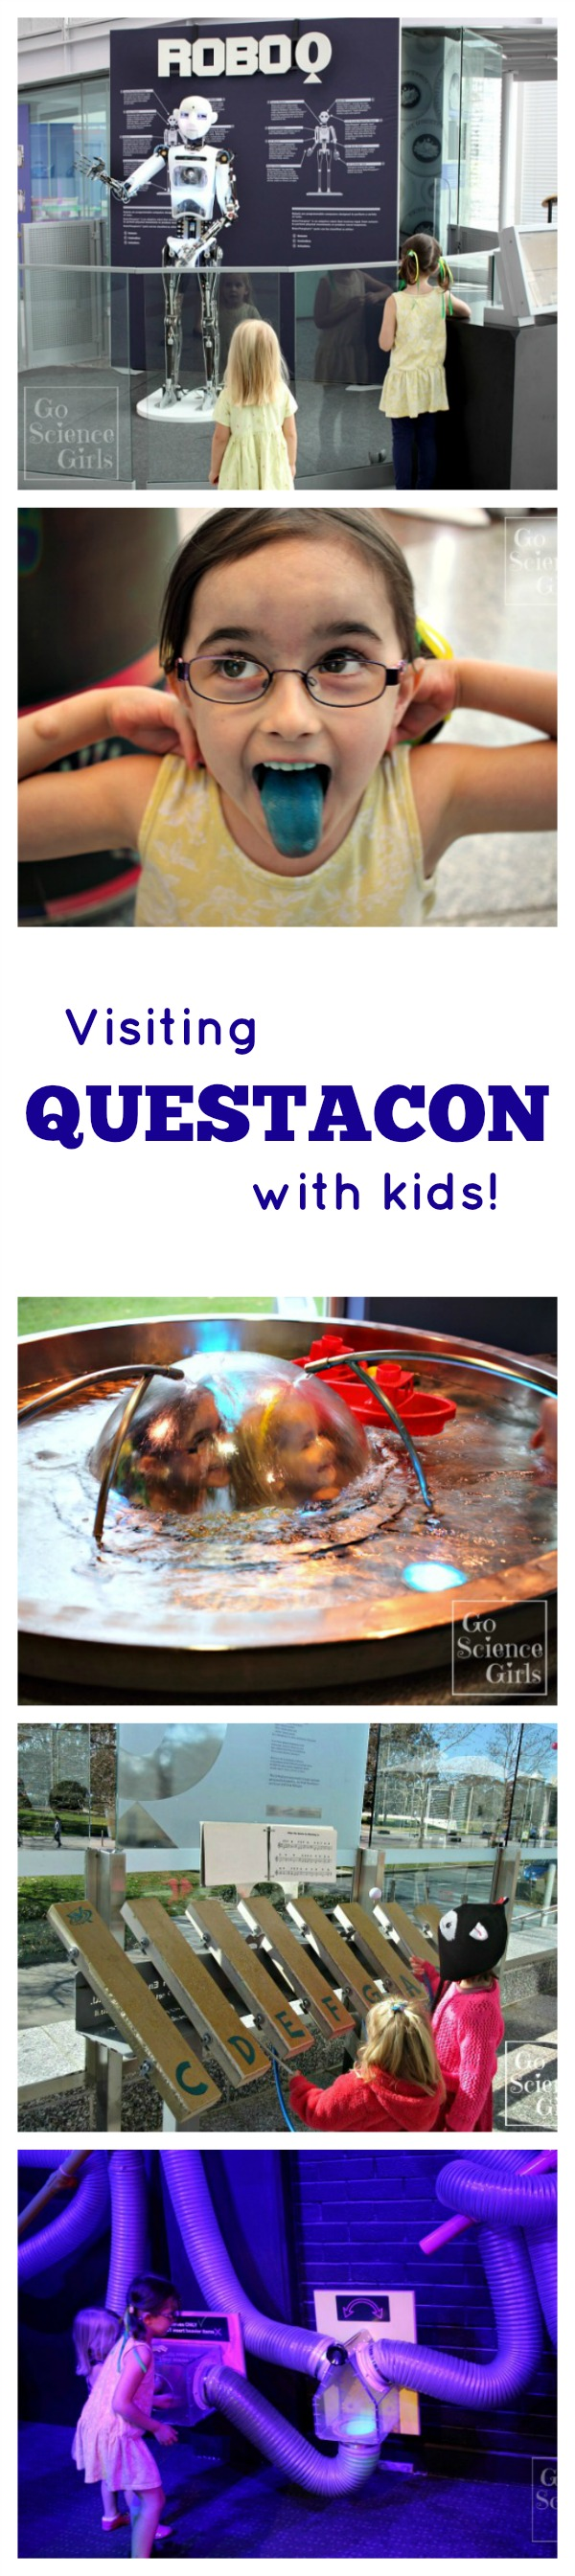 Visiting Questacon with kids - science and technology fun!